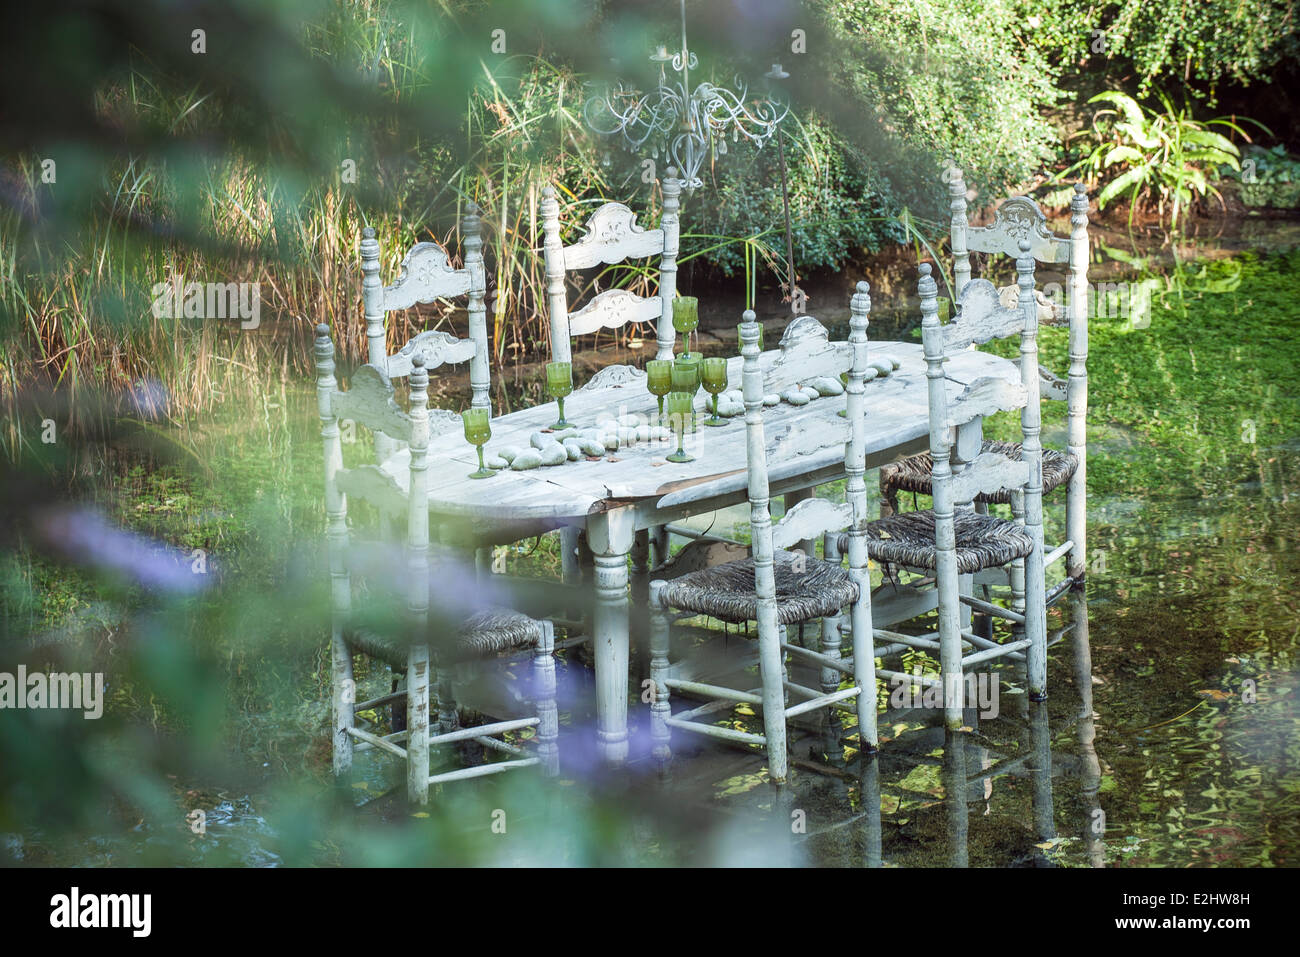 Ornate dining table floating in pond - Stock Image